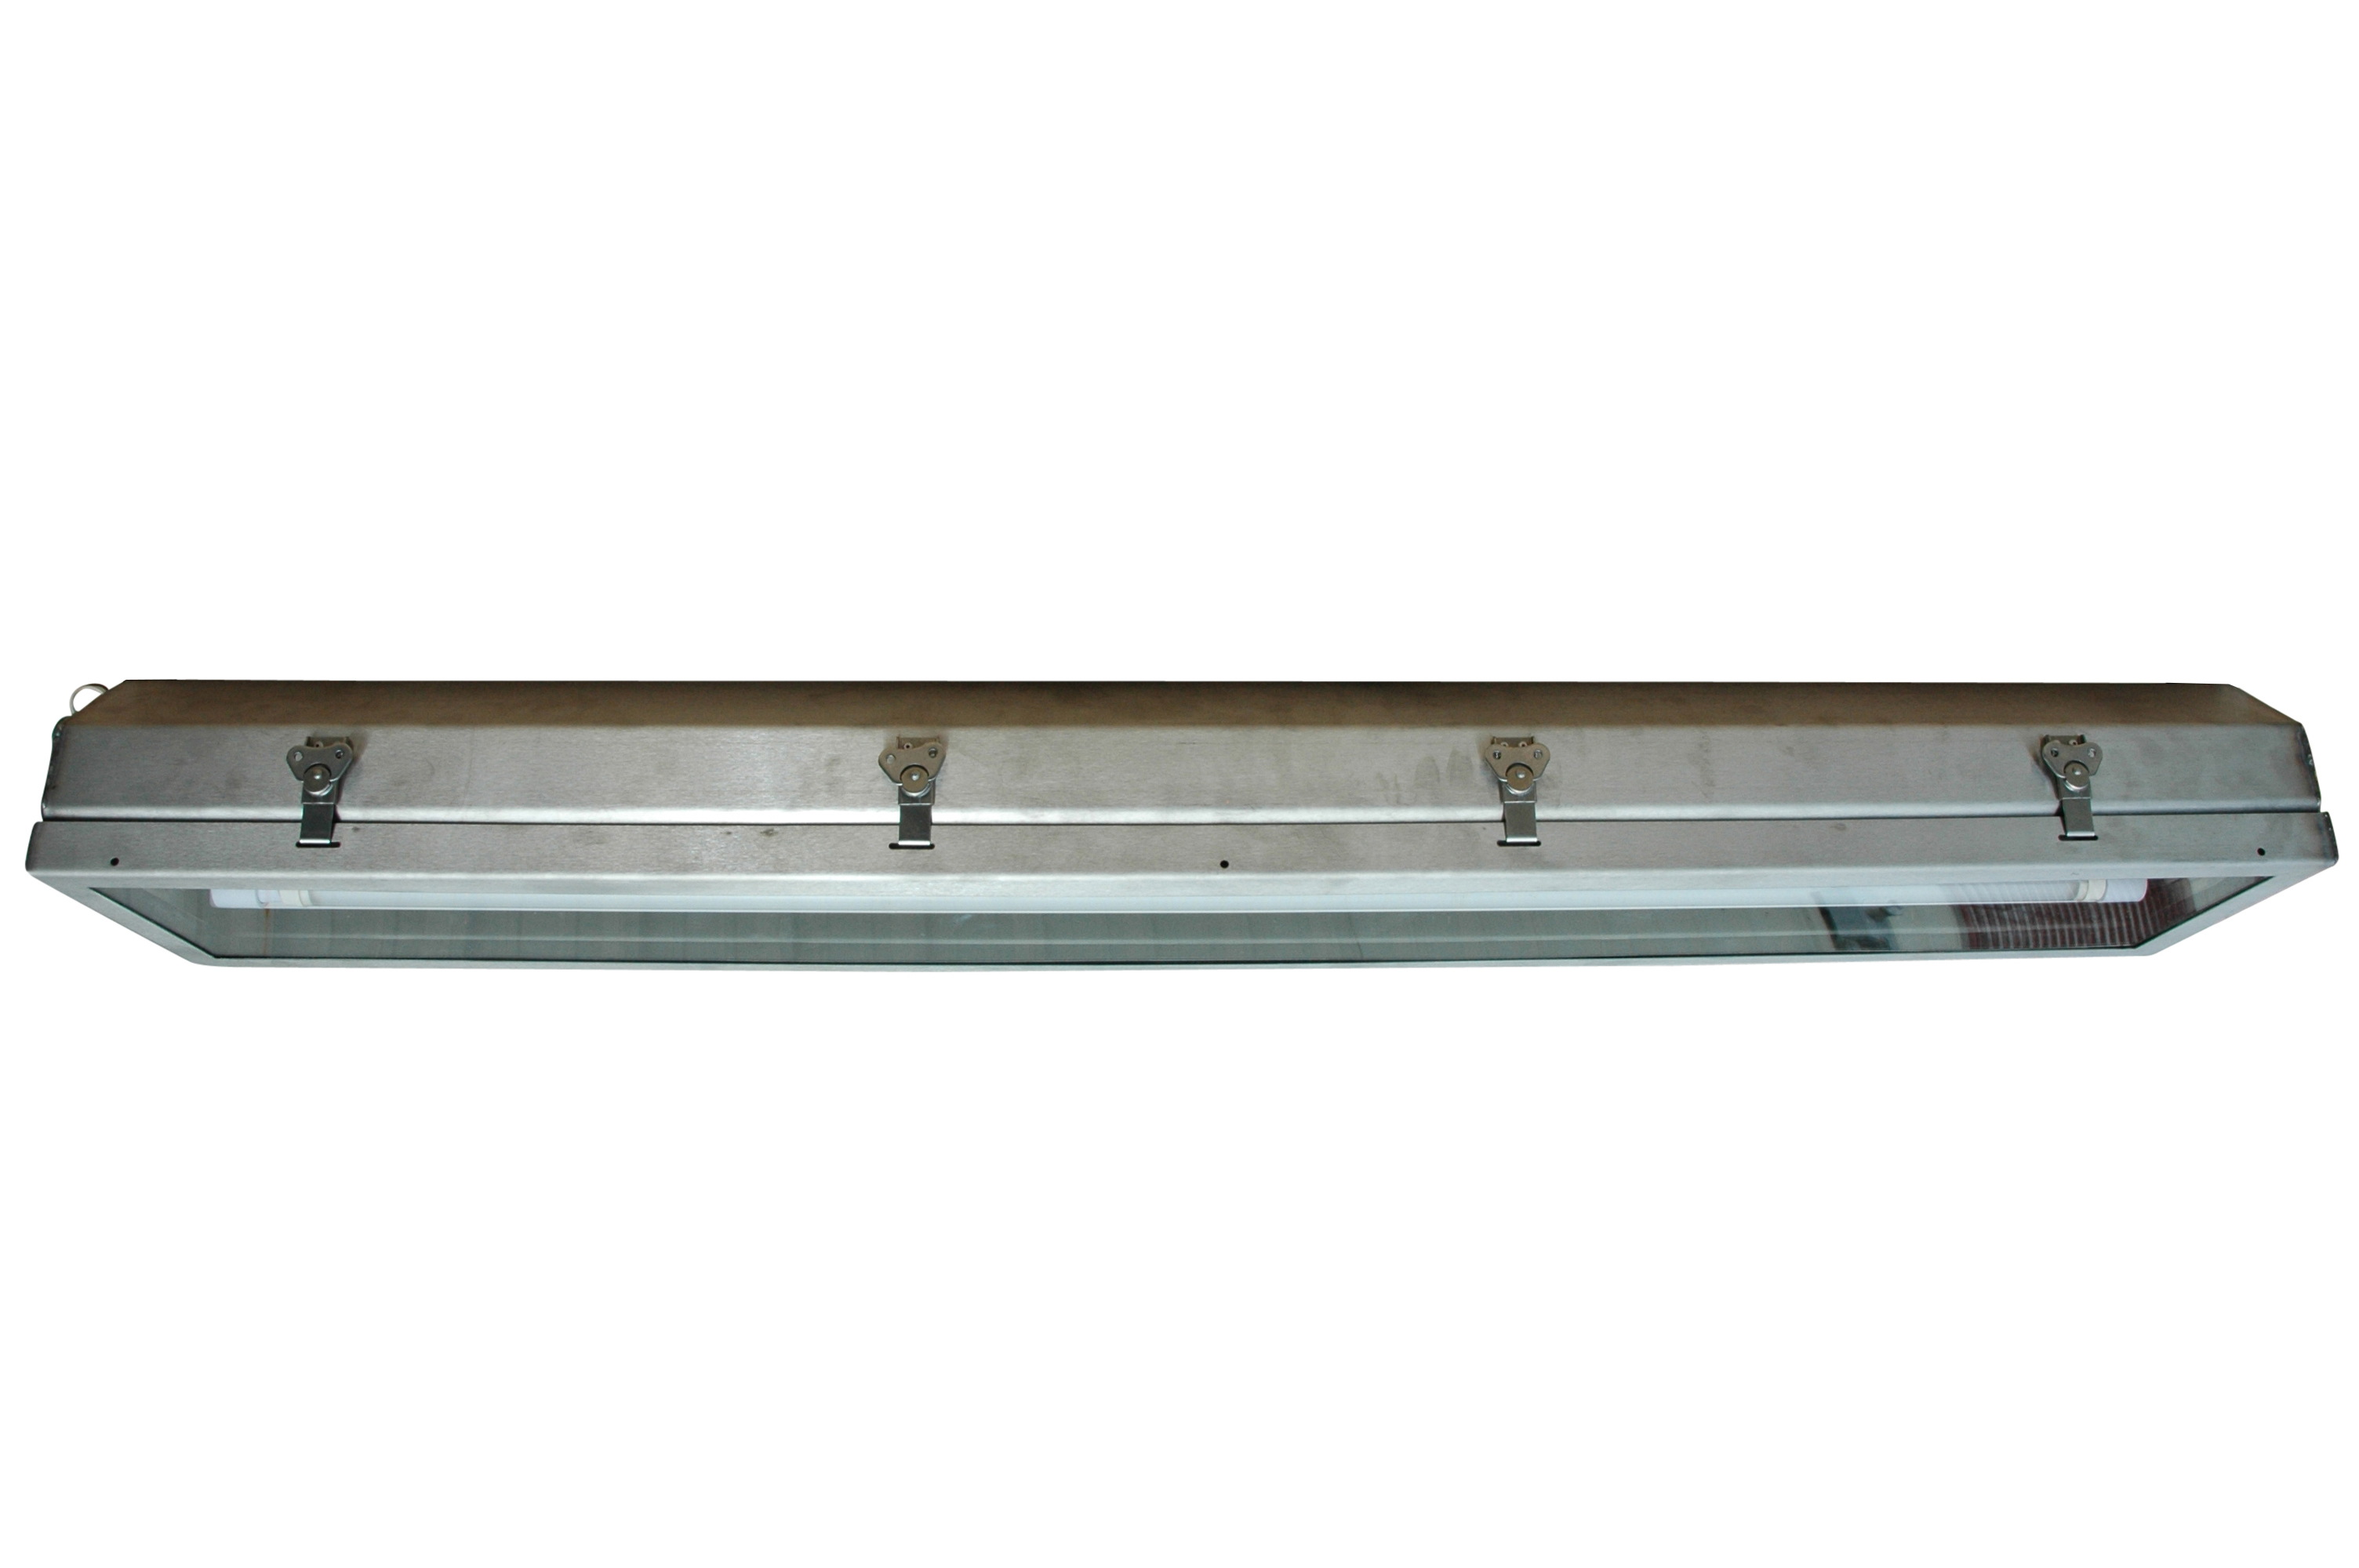 Stainless Steel Fluorescent Light Fixture For Marine Licationscl 1 Division 2 Hazardous Area